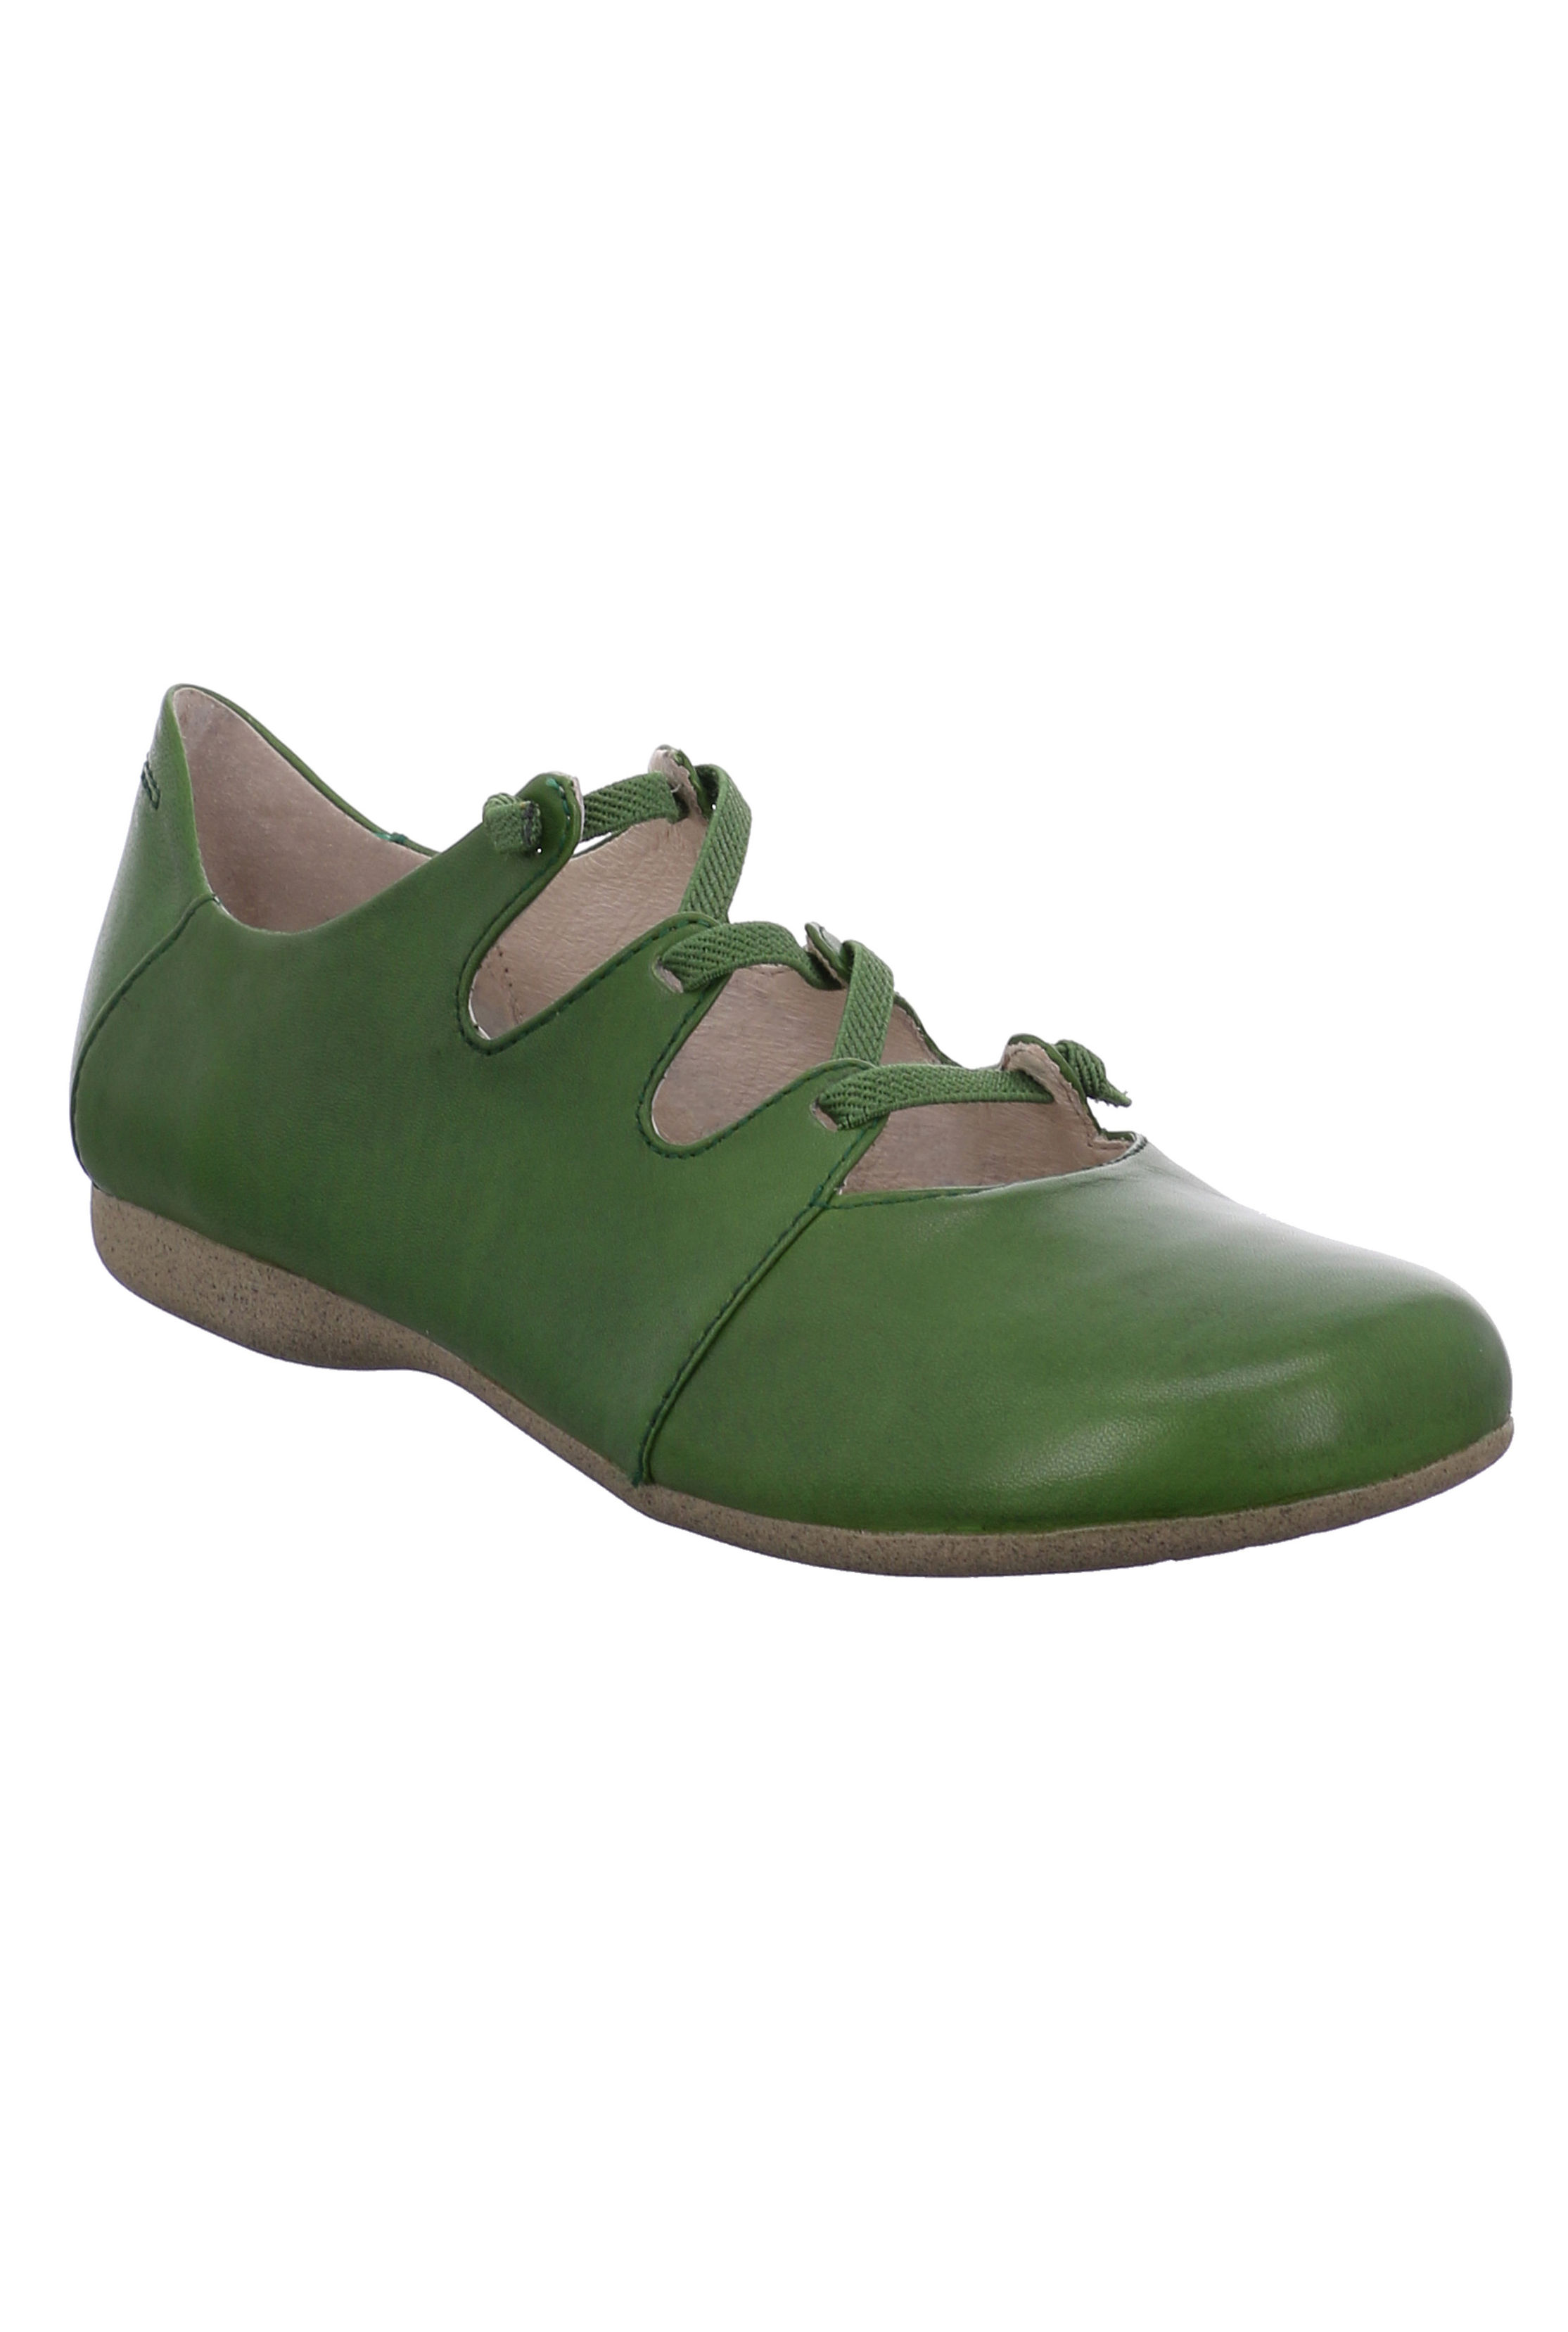 Green Josef Seibel Fiona Leather Shoe